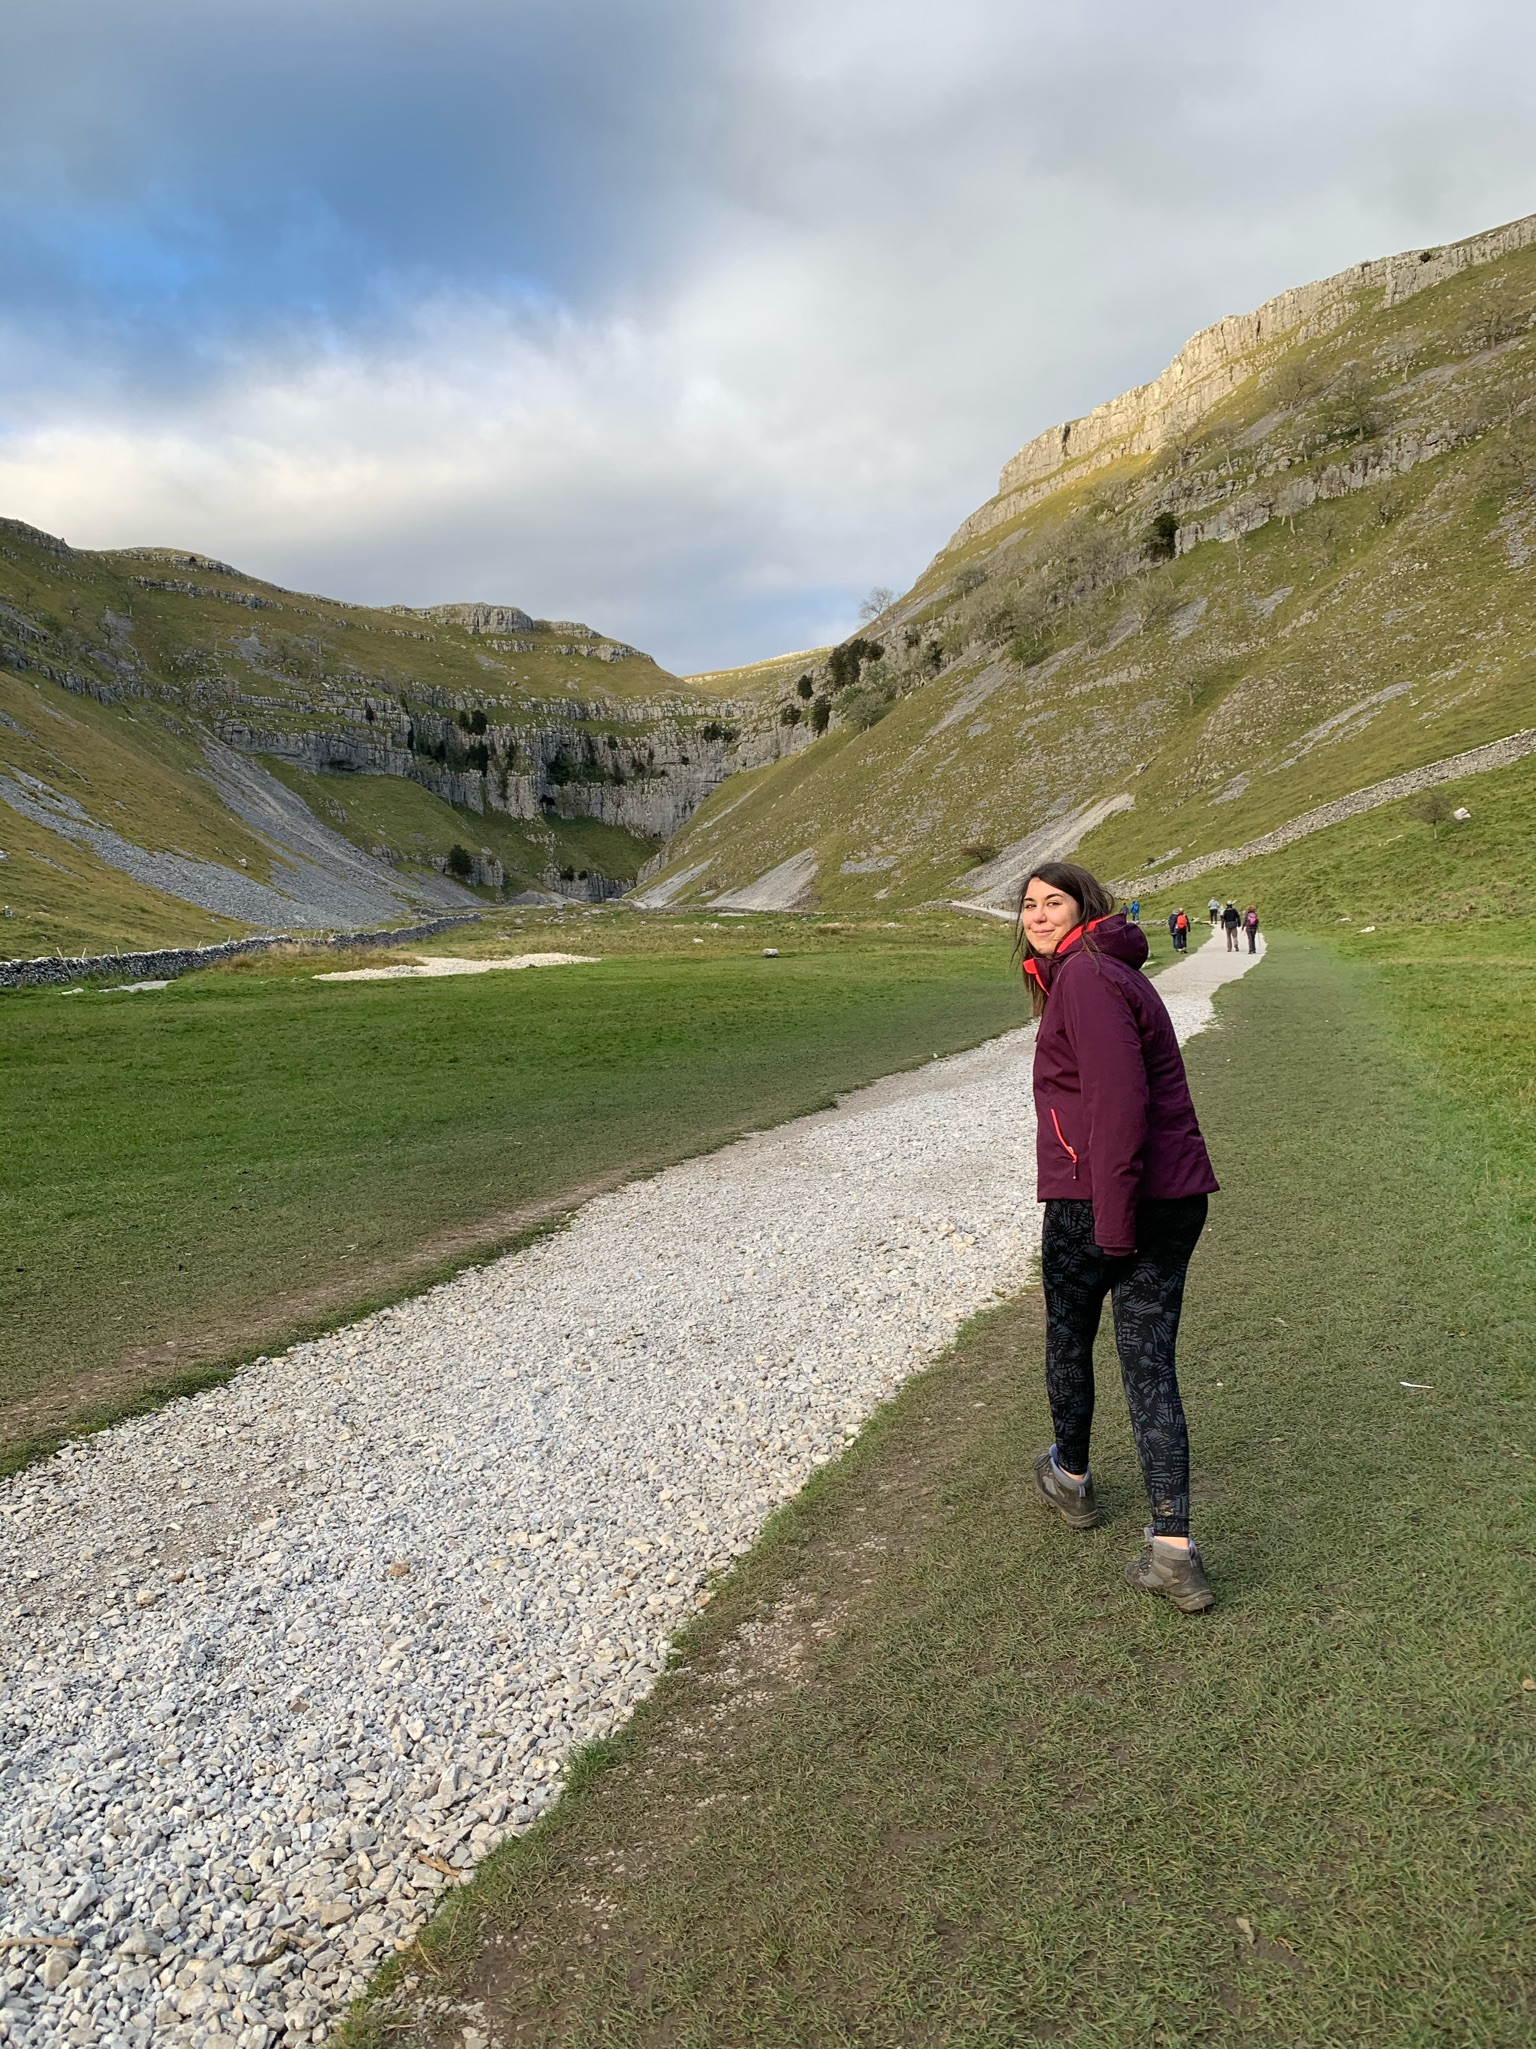 Walking through Gordale Scar in the Yorkshire Dales